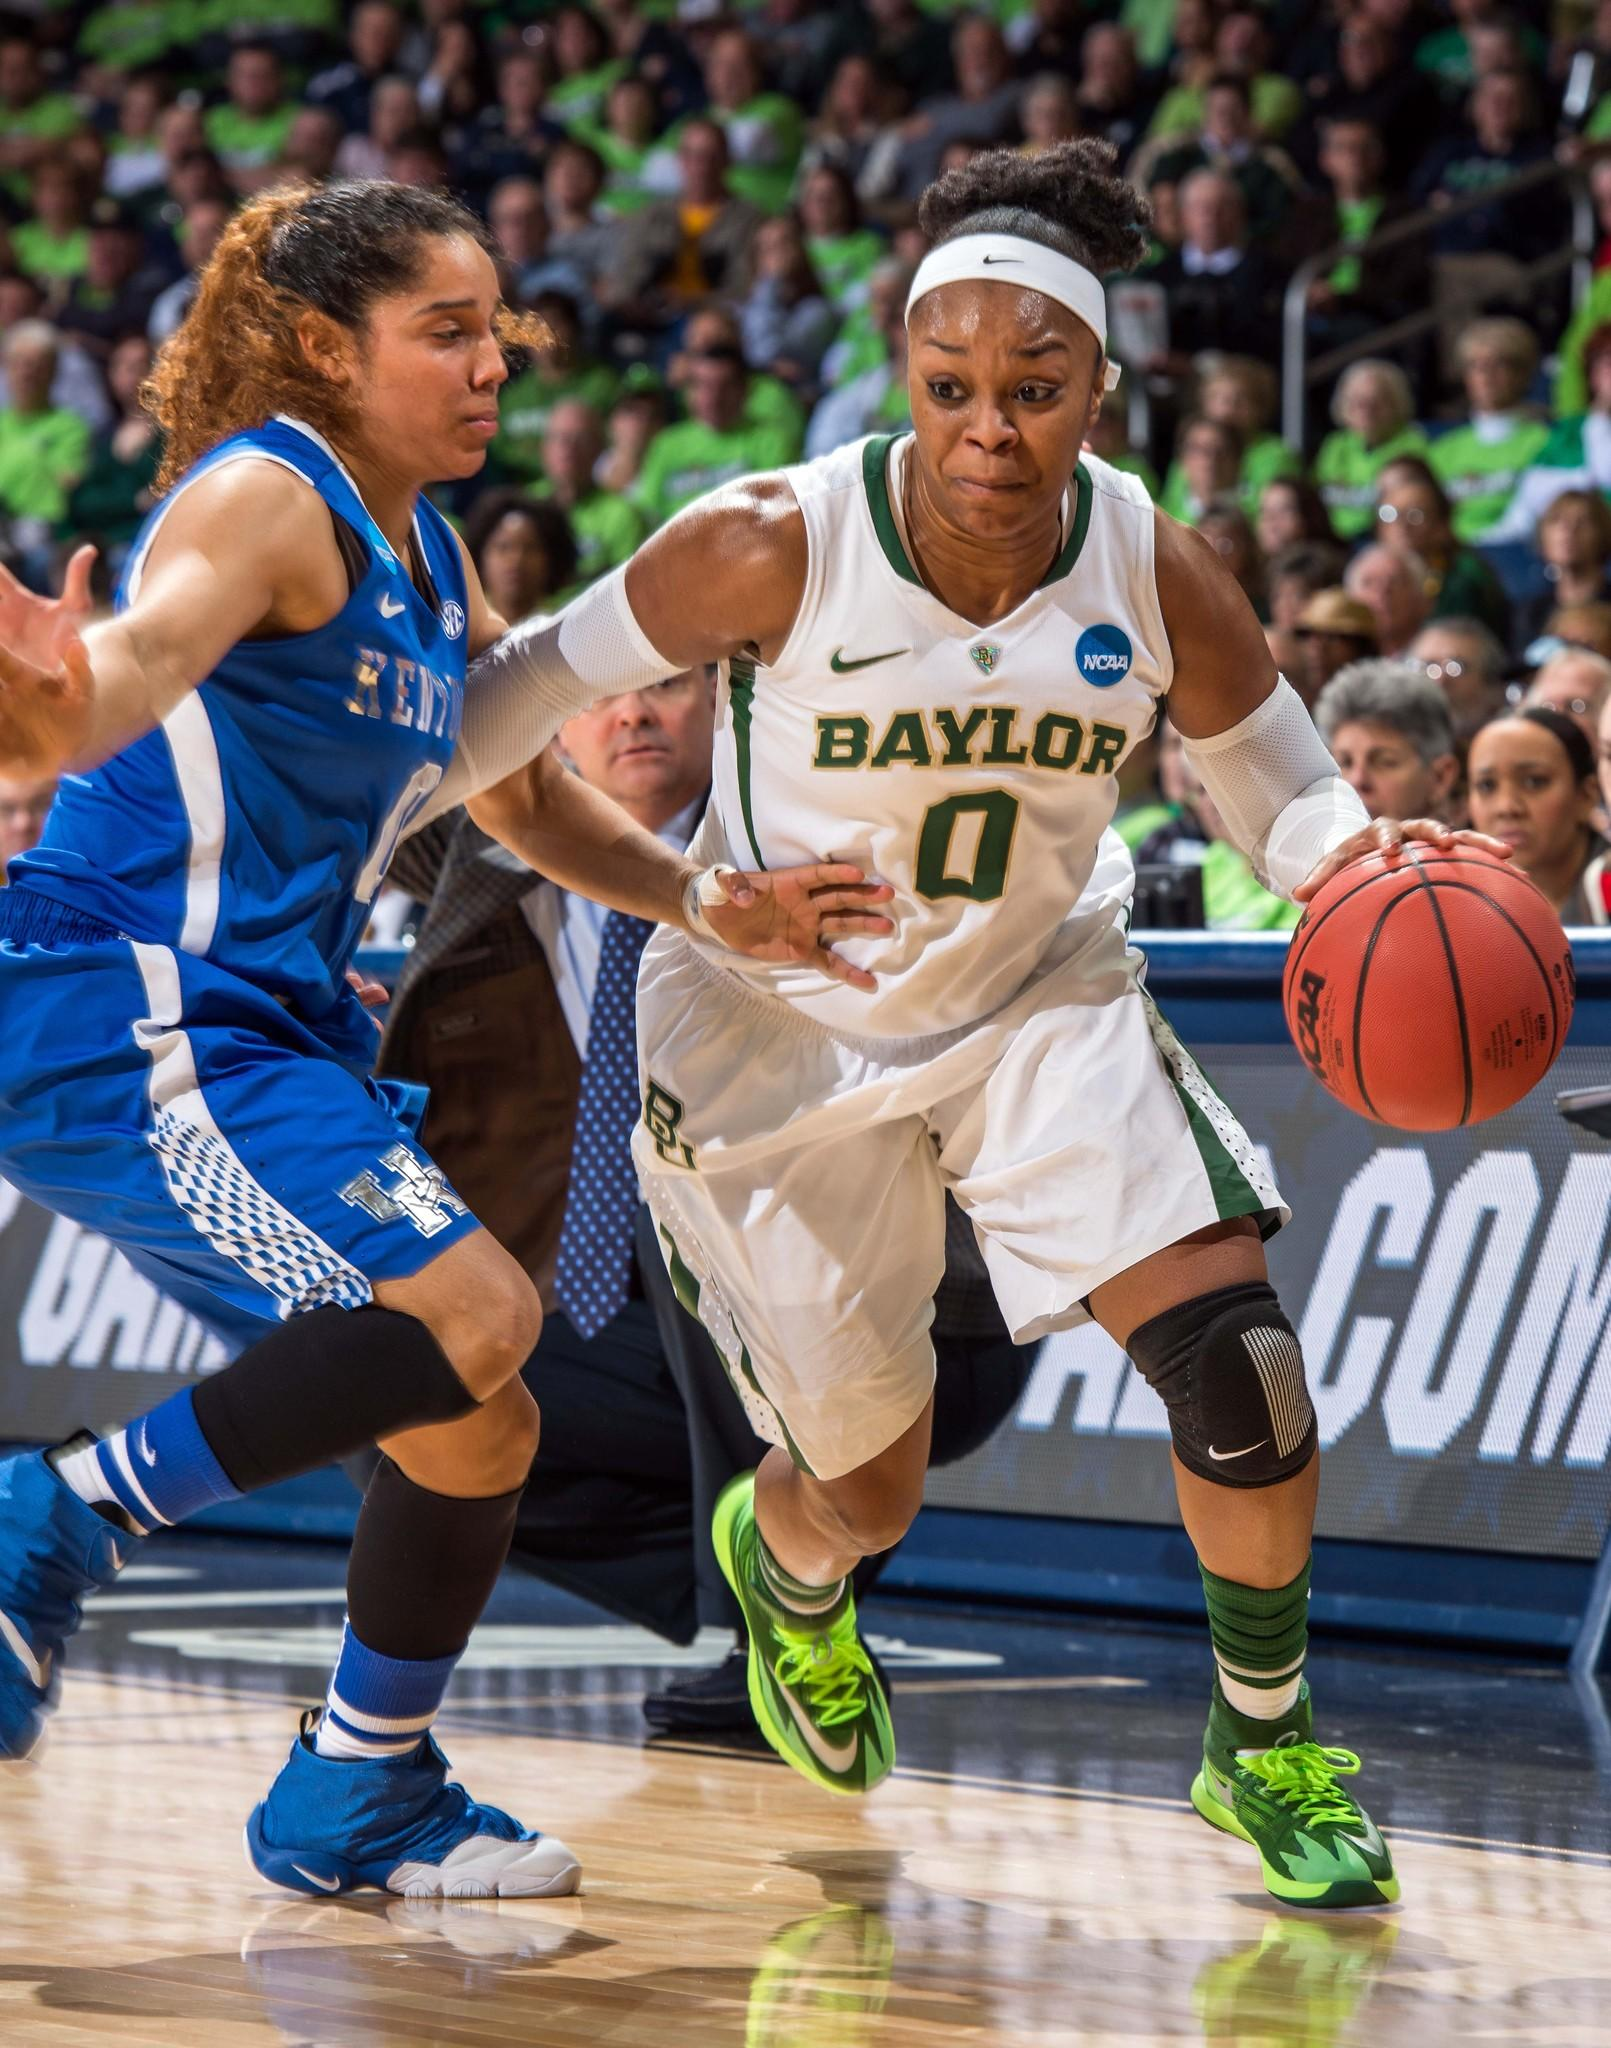 Baylor Bears guard Odyssey Sims dribbles as Kentucky guard Jennifer O'Neill defends.